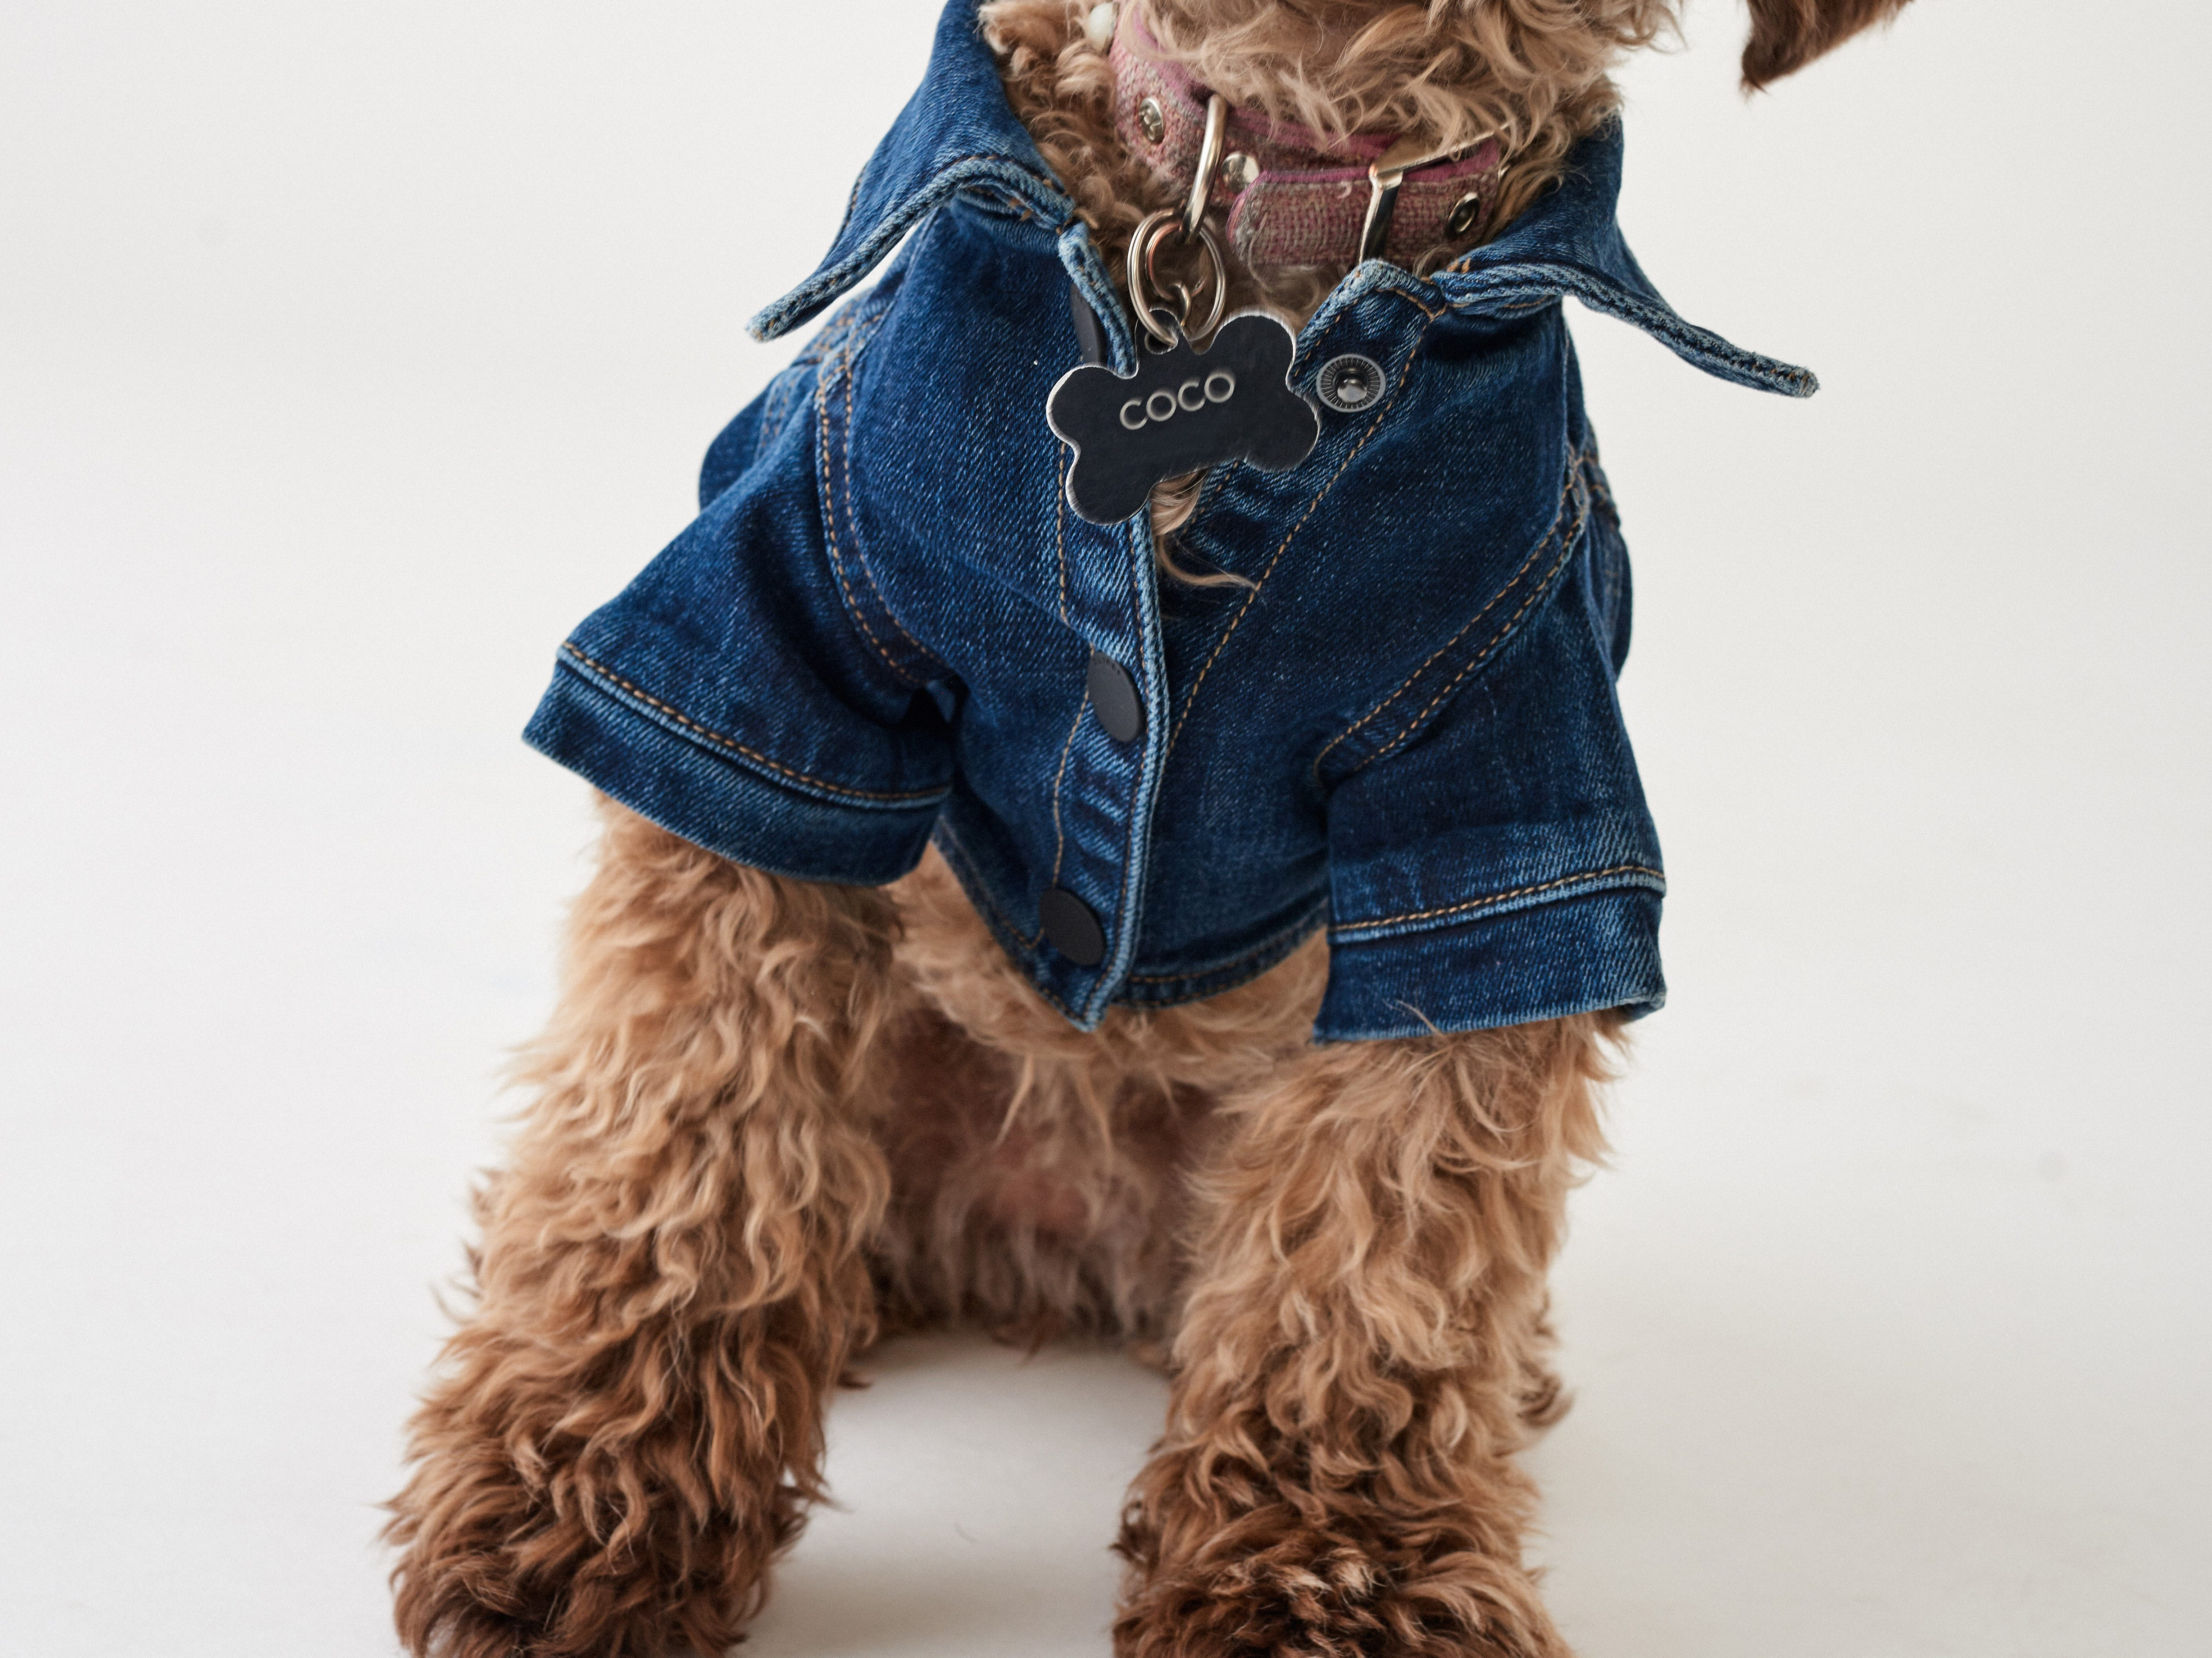 Premium denim brand DL1961 also has designed a sustainably-made denim jacket for dogs.